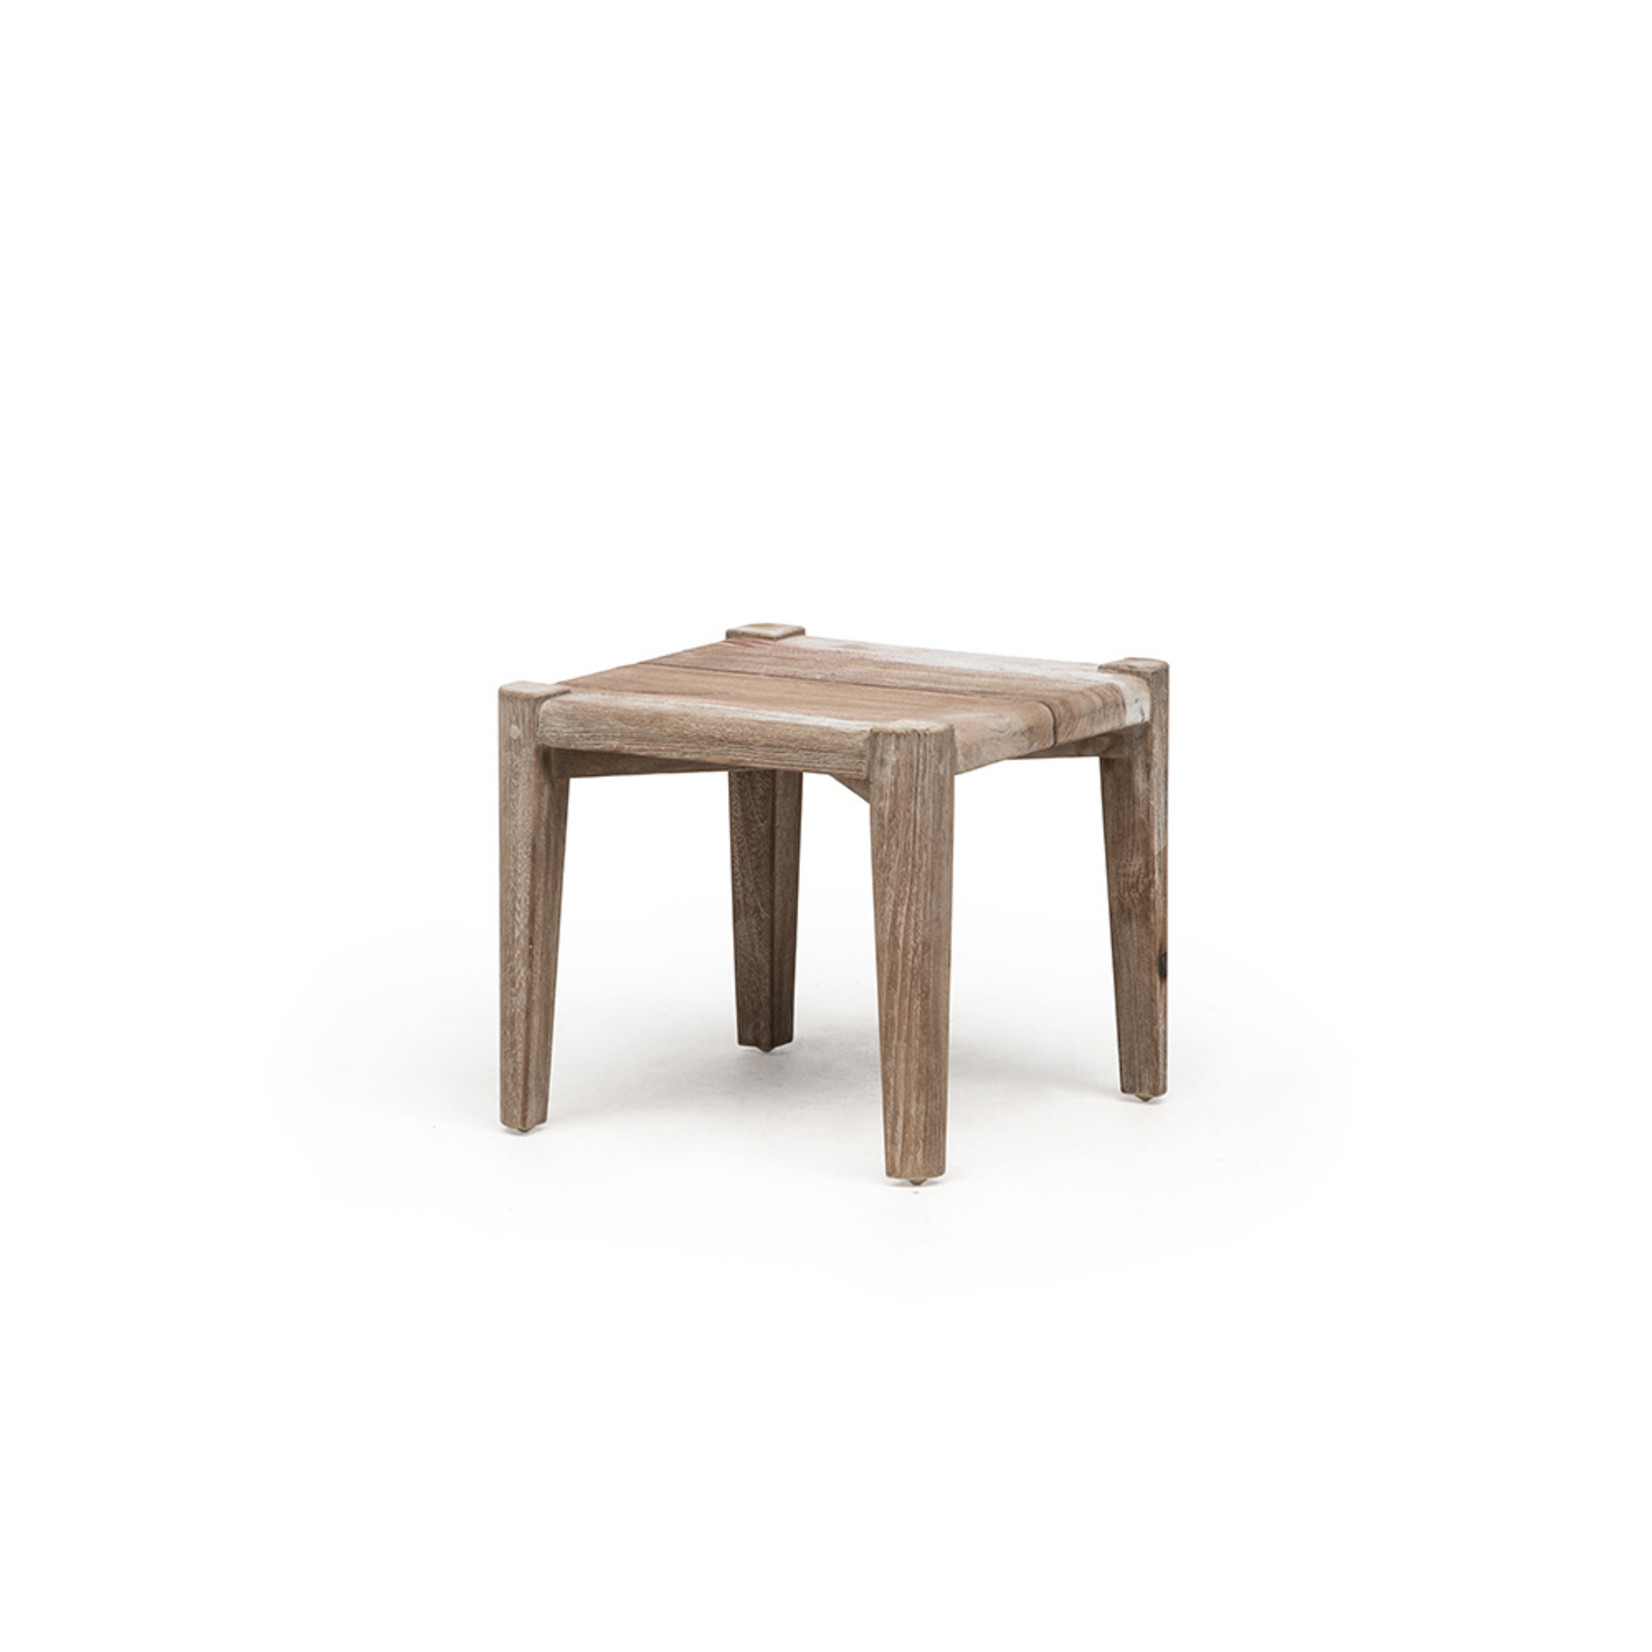 Gommaire Square Coffee Table Floor Small | Reclaimed Teak Natural Gray